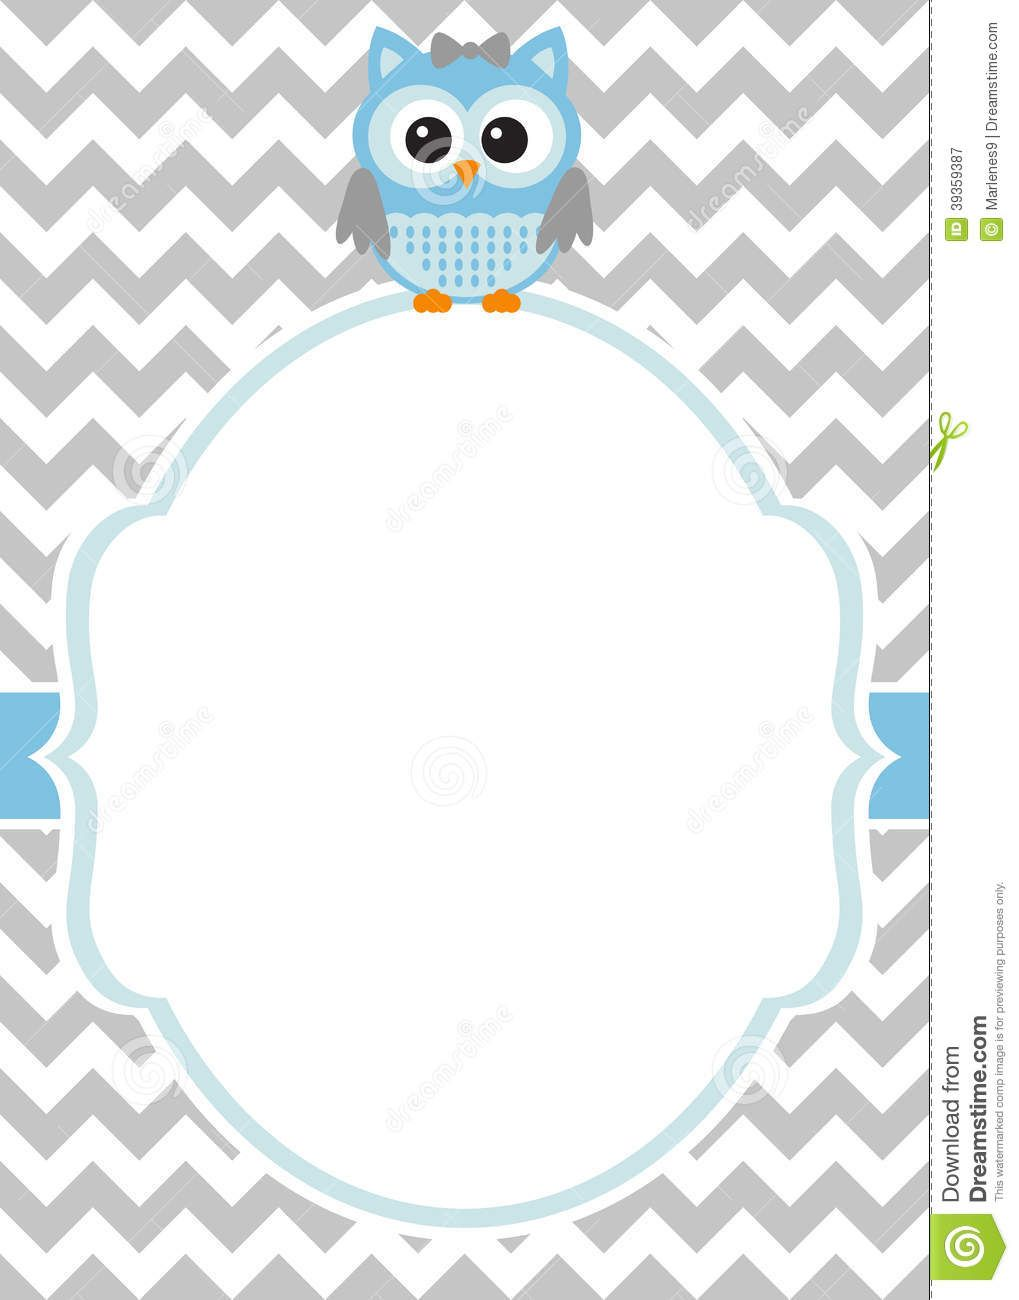 Invitacion | Chickens baby shower | Pinterest | Babies